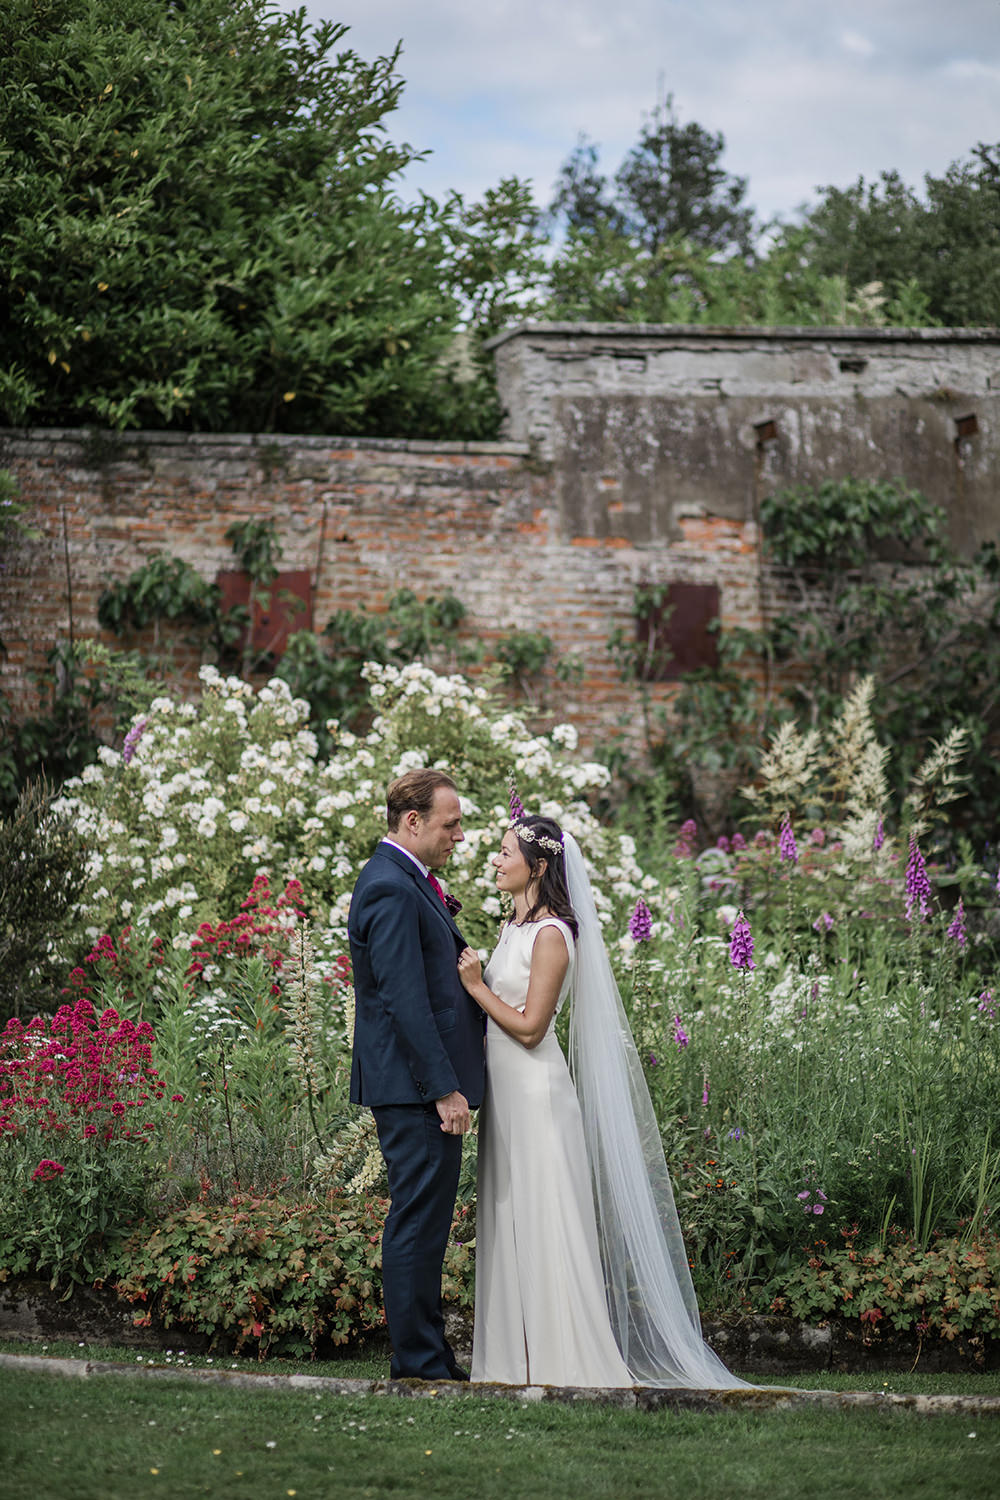 Bride Bridal Boat Neck Cut Out Dress Gown Flower Floral Crown Veil Navy Suit Groom Marquee Castle Wedding Rachael Fraser Photography